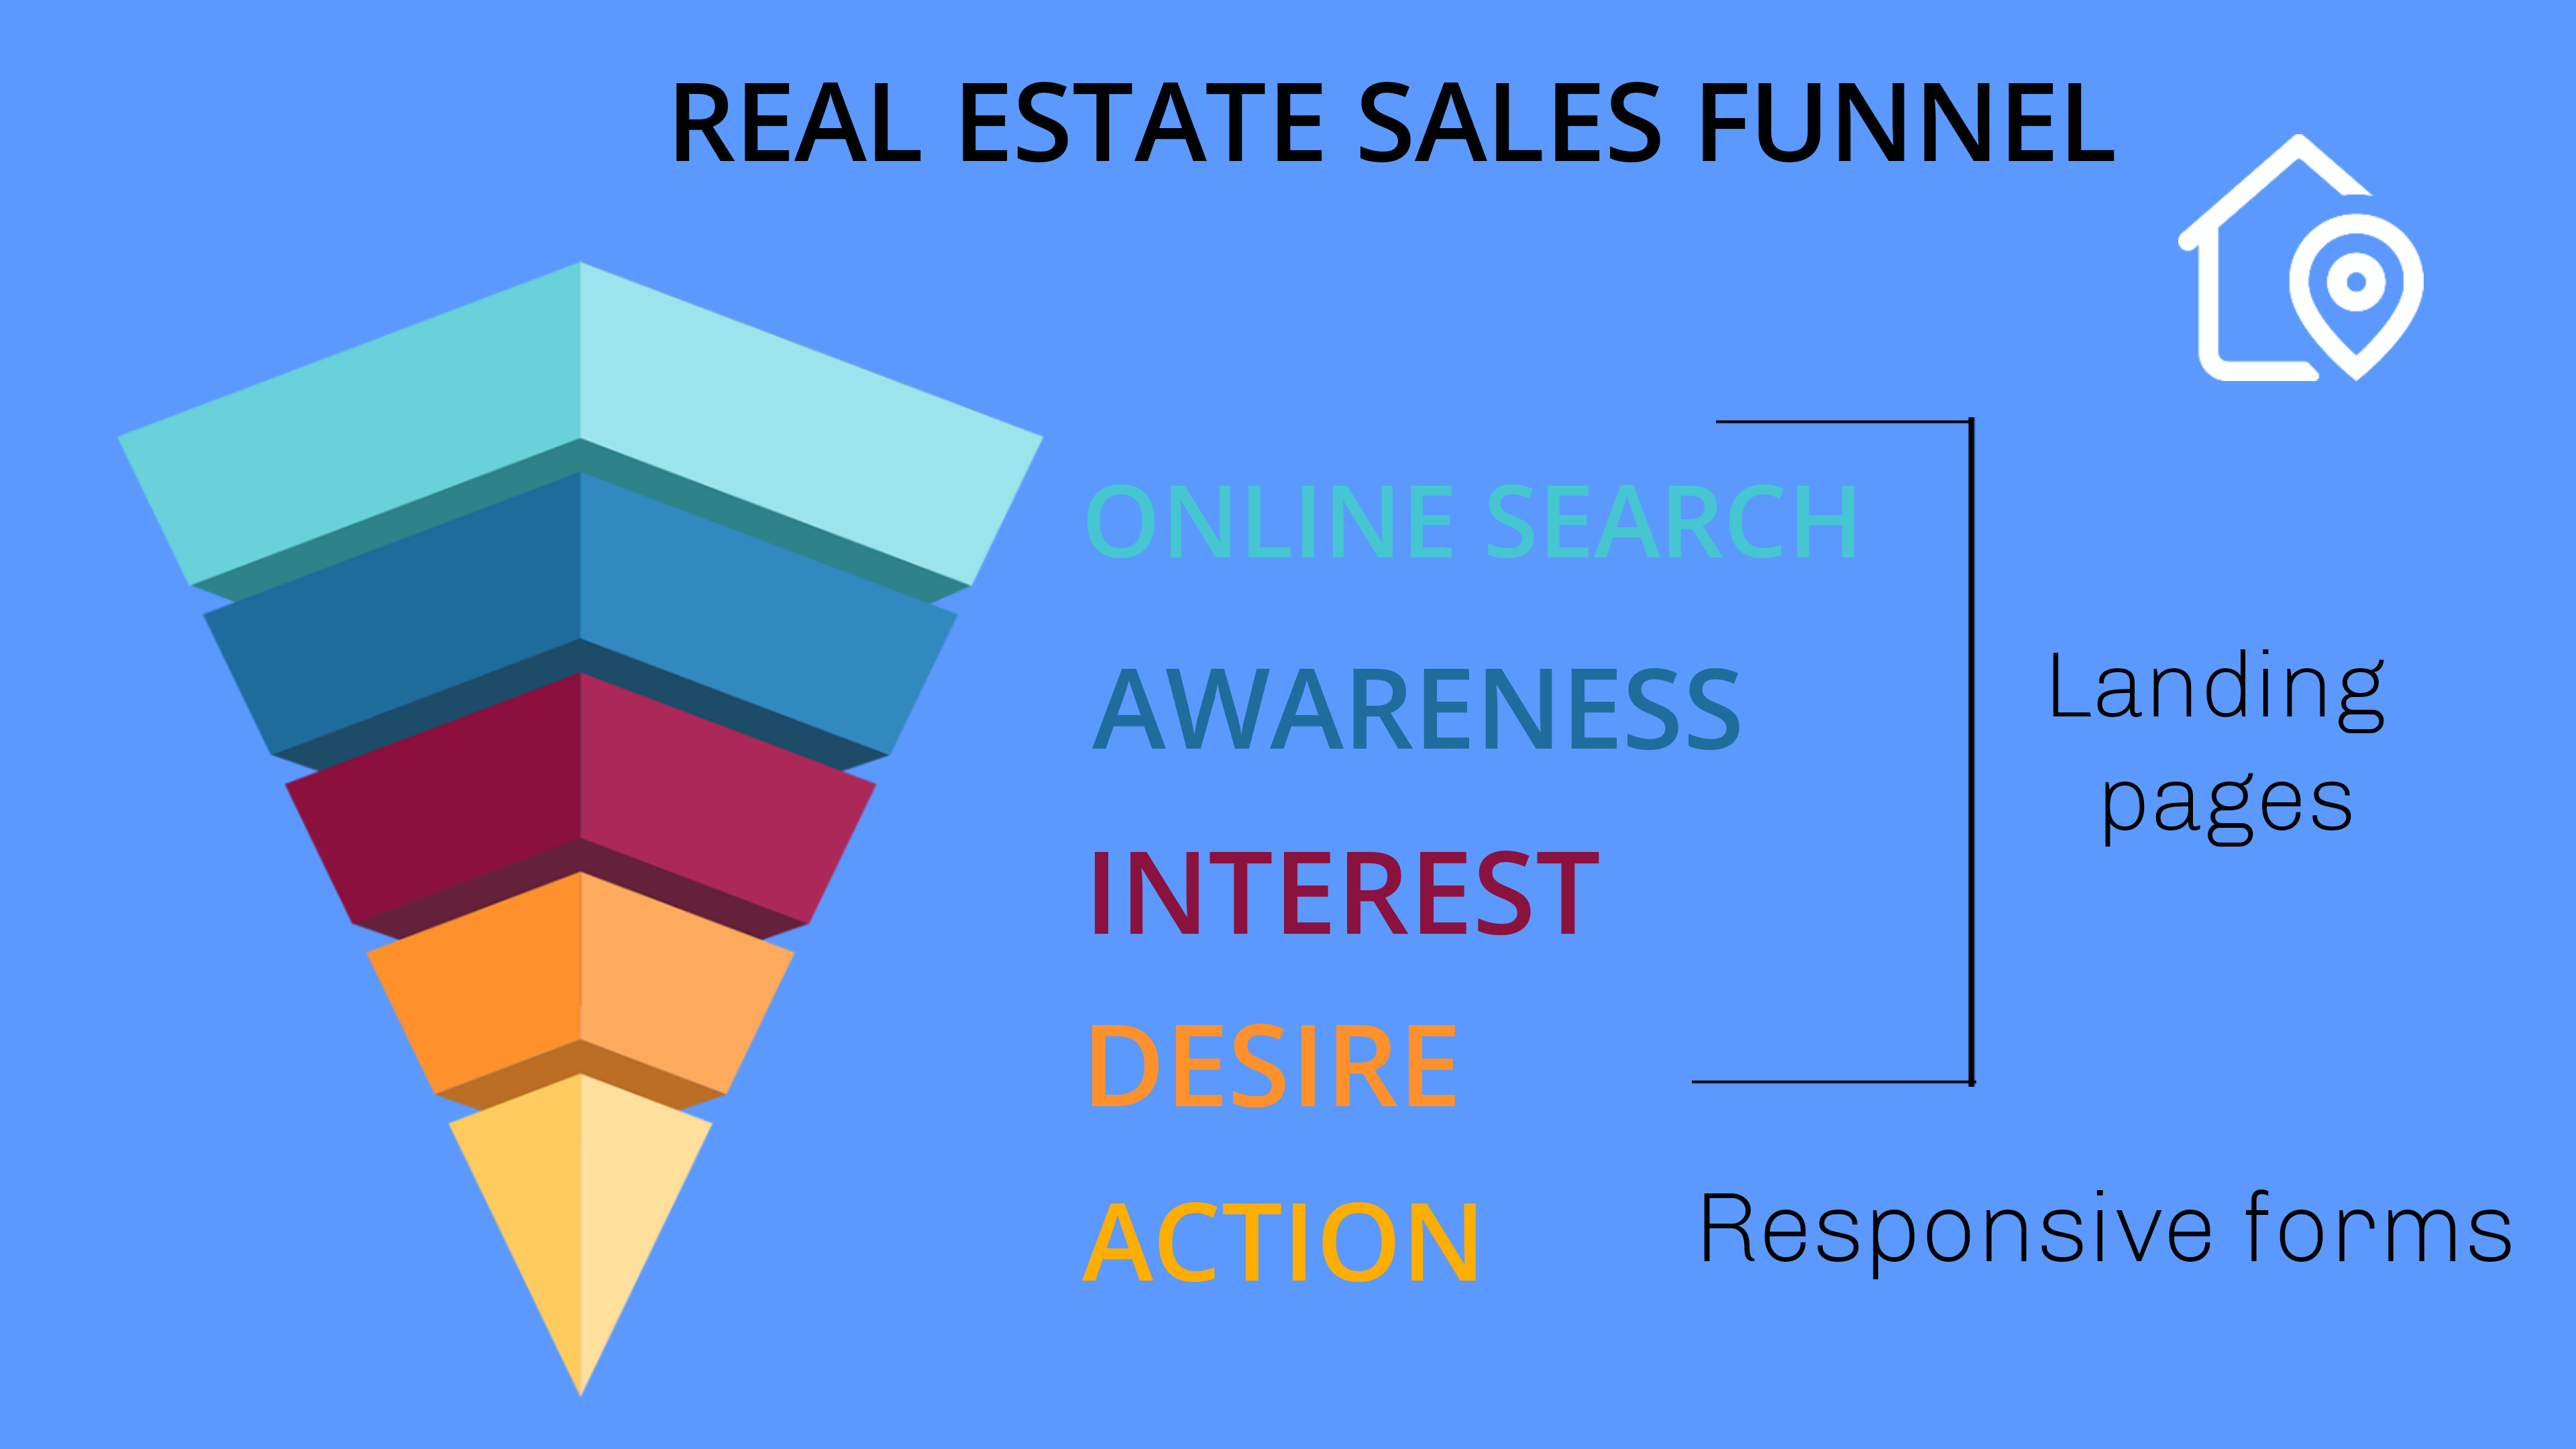 Real Estate Sales Funnel_Infographic MightyForms